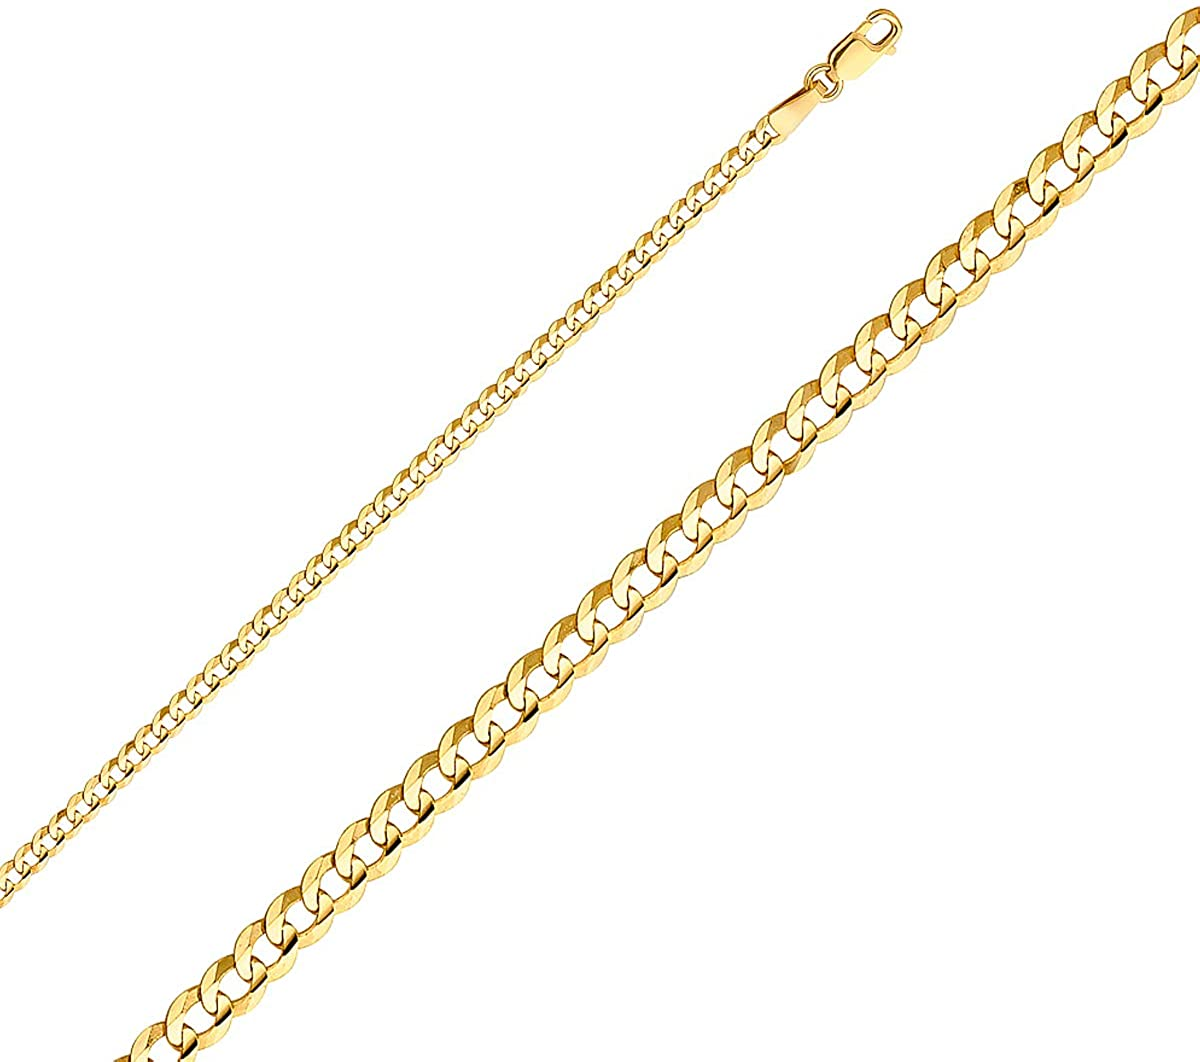 TGDJ 14k Yellow OR White Gold Solid 2.5mm Cuban Curb Chain Necklace with Lobster Claw Clasp